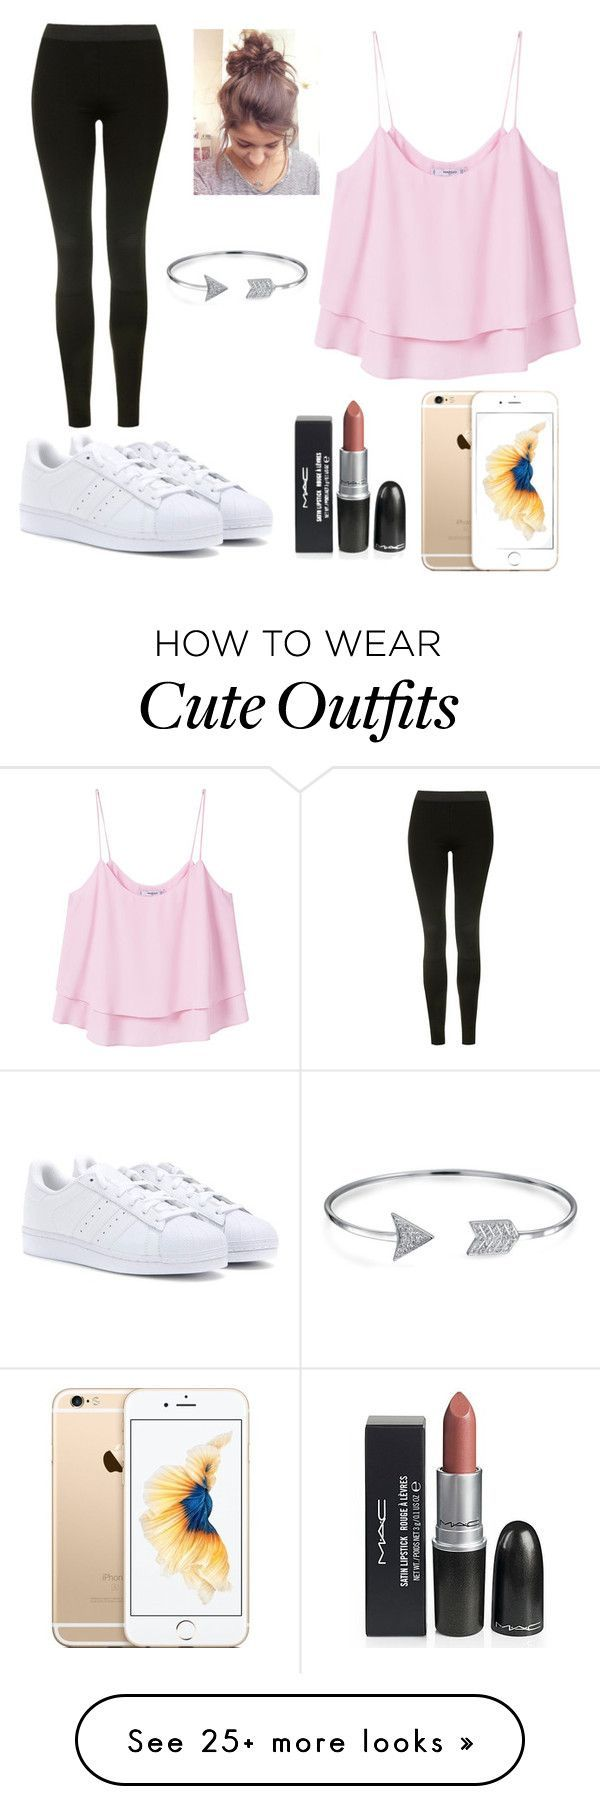 Festival Outfit by mc1307 on Polyvore featuring MANGO, Topshop, adidas and Bling Jewelry #pearljewelry